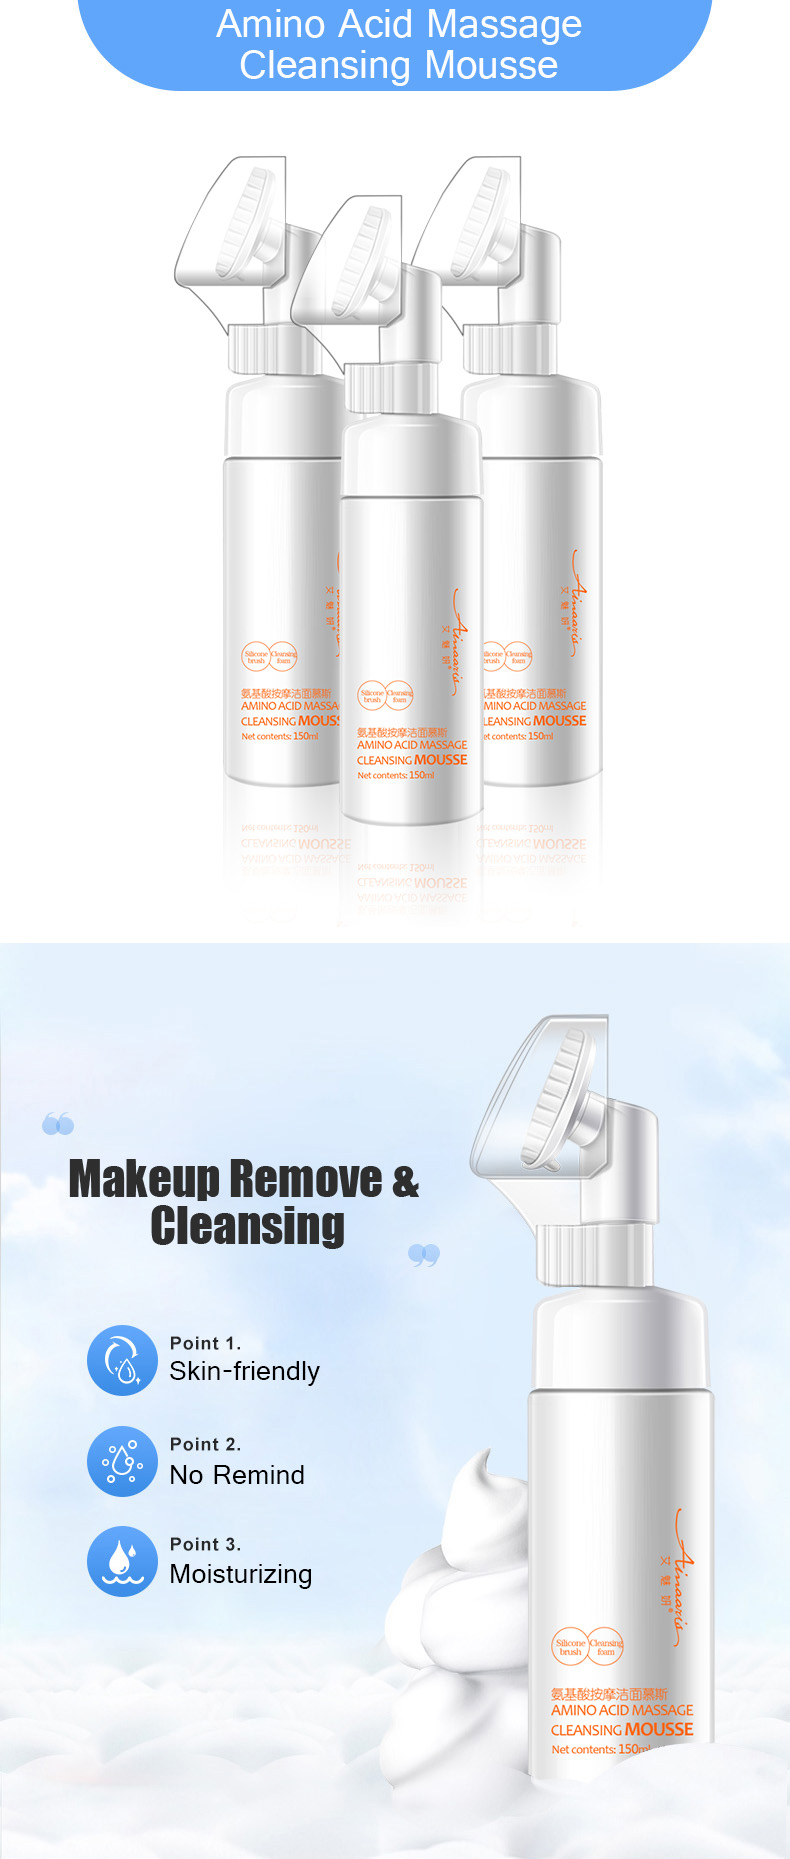 Amino Acid Facial Hydrating Cleansing Mousse Cream Skin Care with Brush OEM/ODM